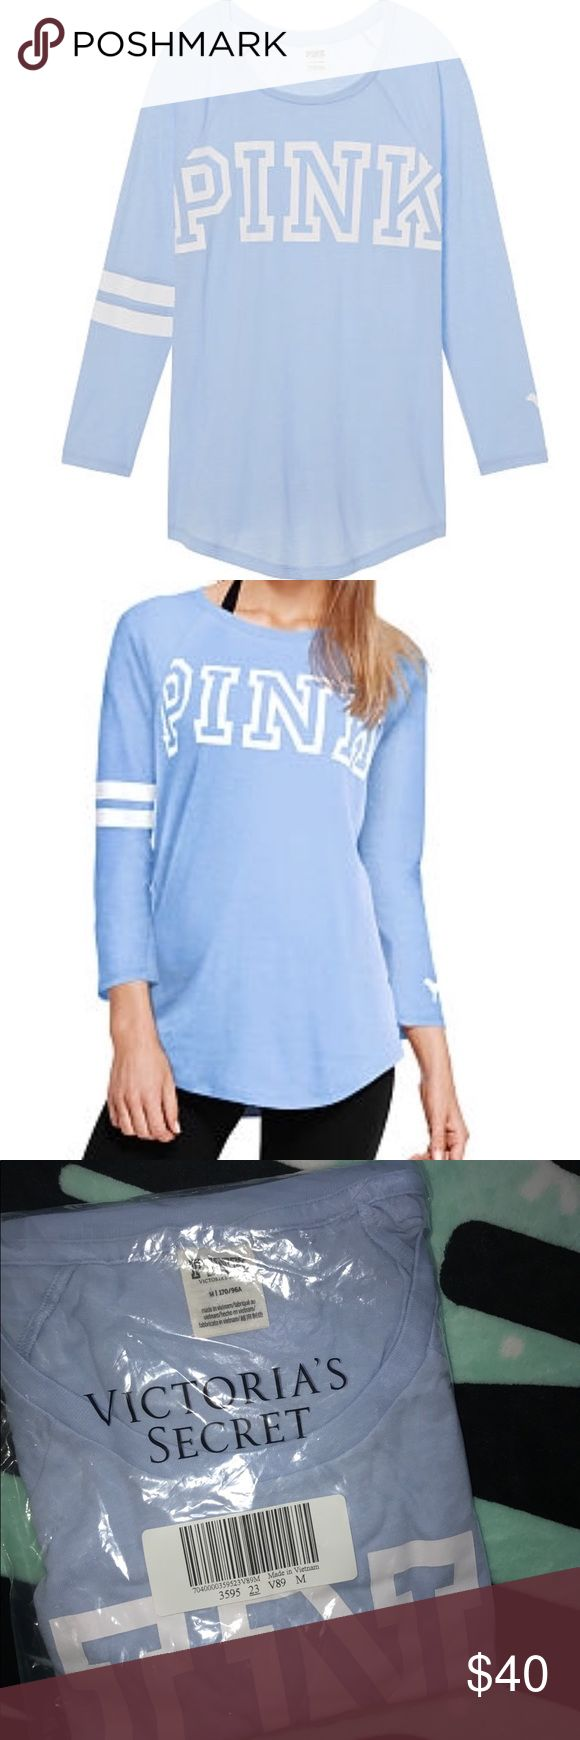 🆕Bundle & Save PINK VS Perfect Baseball Tee Price Firm unless bundle:A classic three-quarter tee with team graphics and a relaxed fit.Shipped in online original packaging   Color:Morning Sky Three-quarter sleeves Curved hem Team graphic on front and back Imported cotton/polyester PINK Victoria's Secret Tops Tees - Long Sleeve